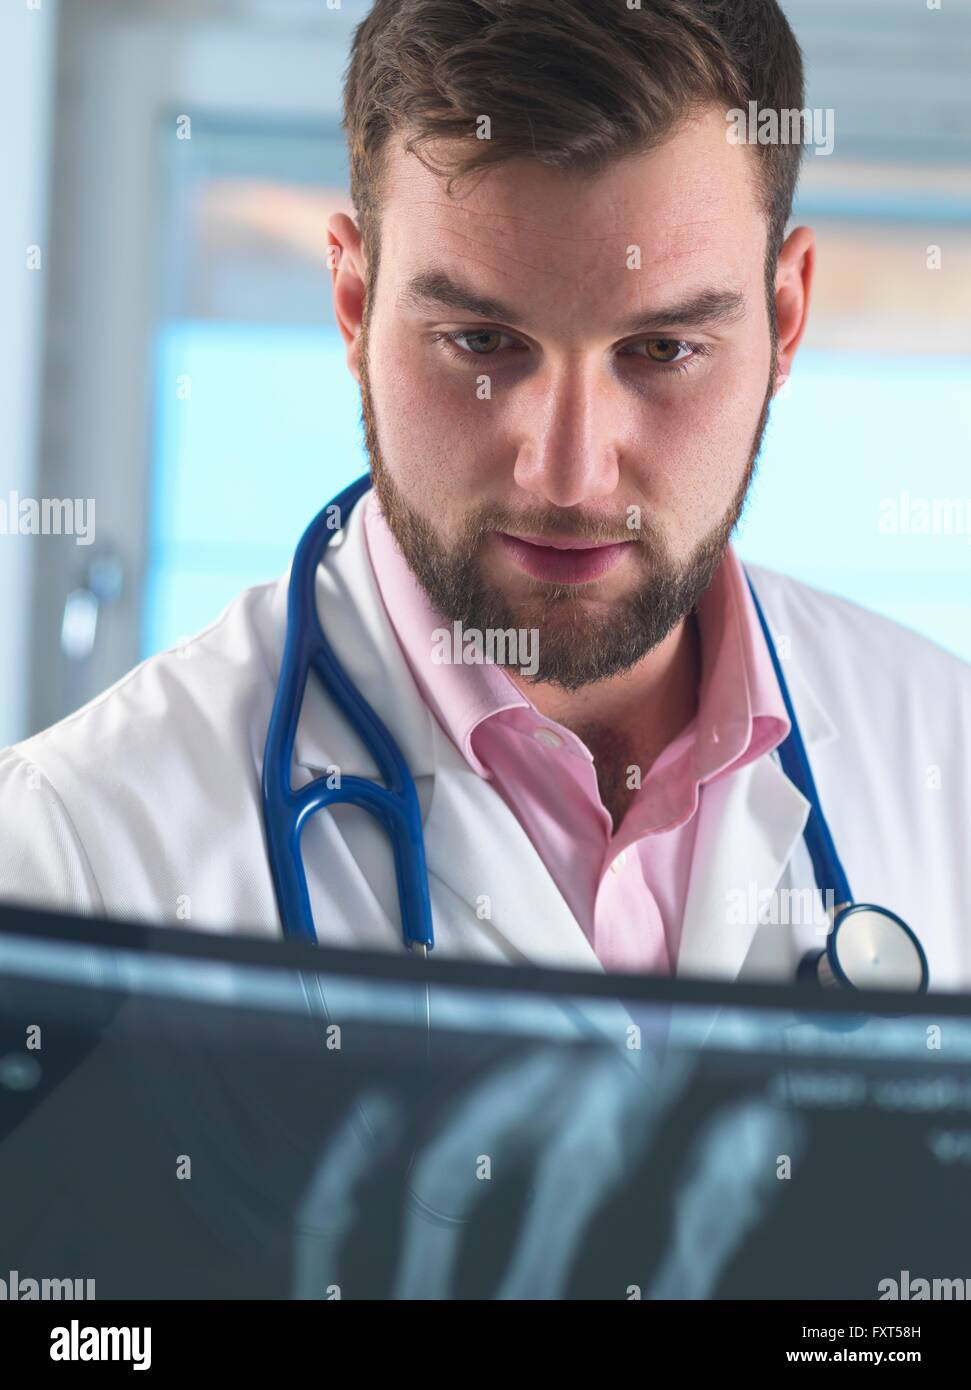 Young male junior doctor examining x-ray of fractured hand in hospital - Stock Image